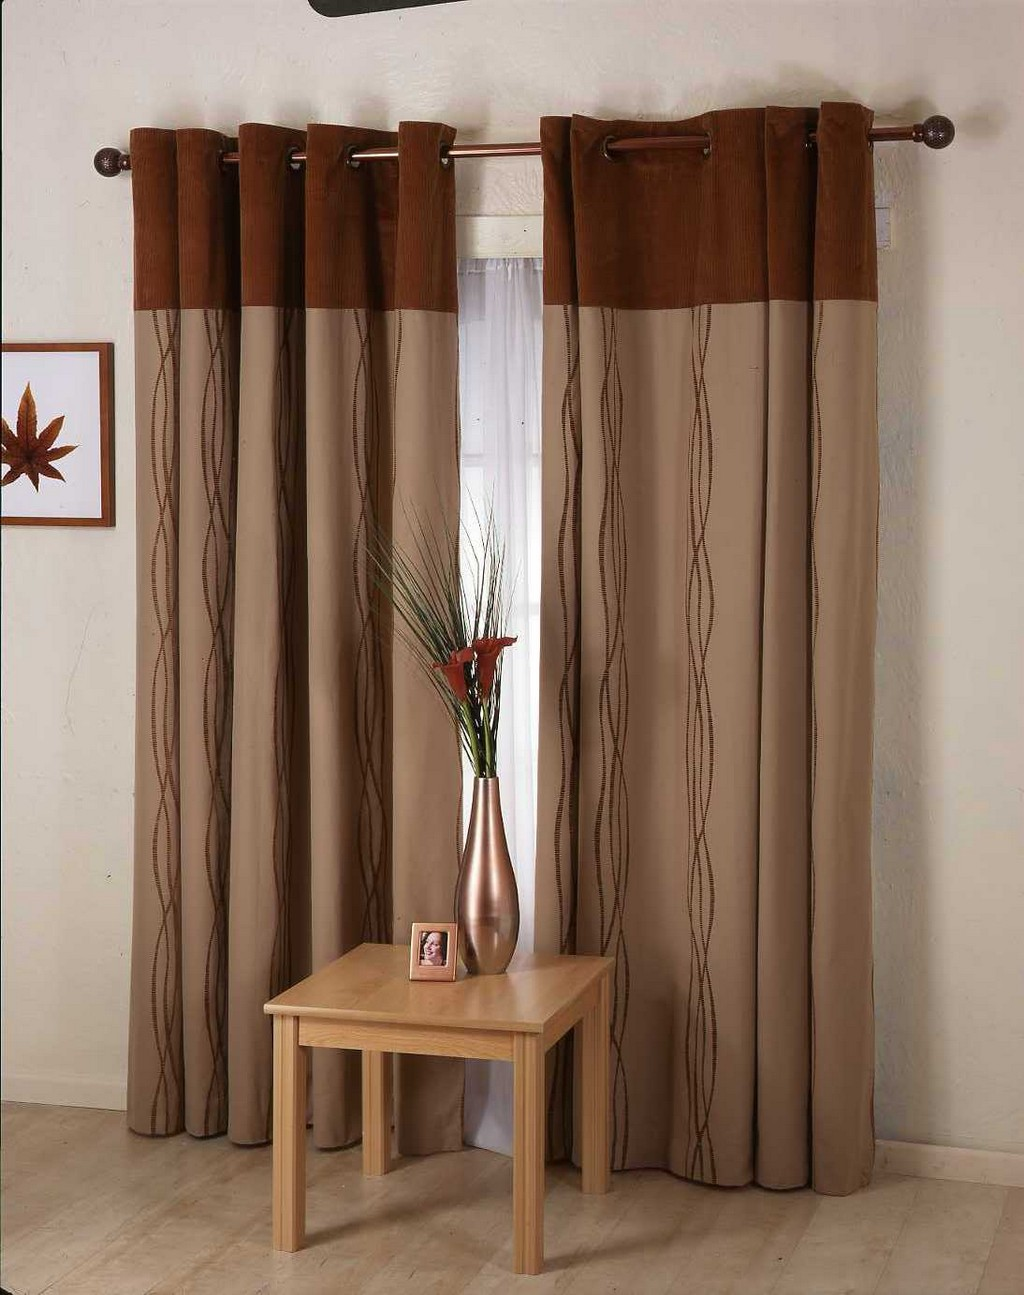 Drapes, Curtains And Drapes, Grommet Drapes, Supreme Drapes